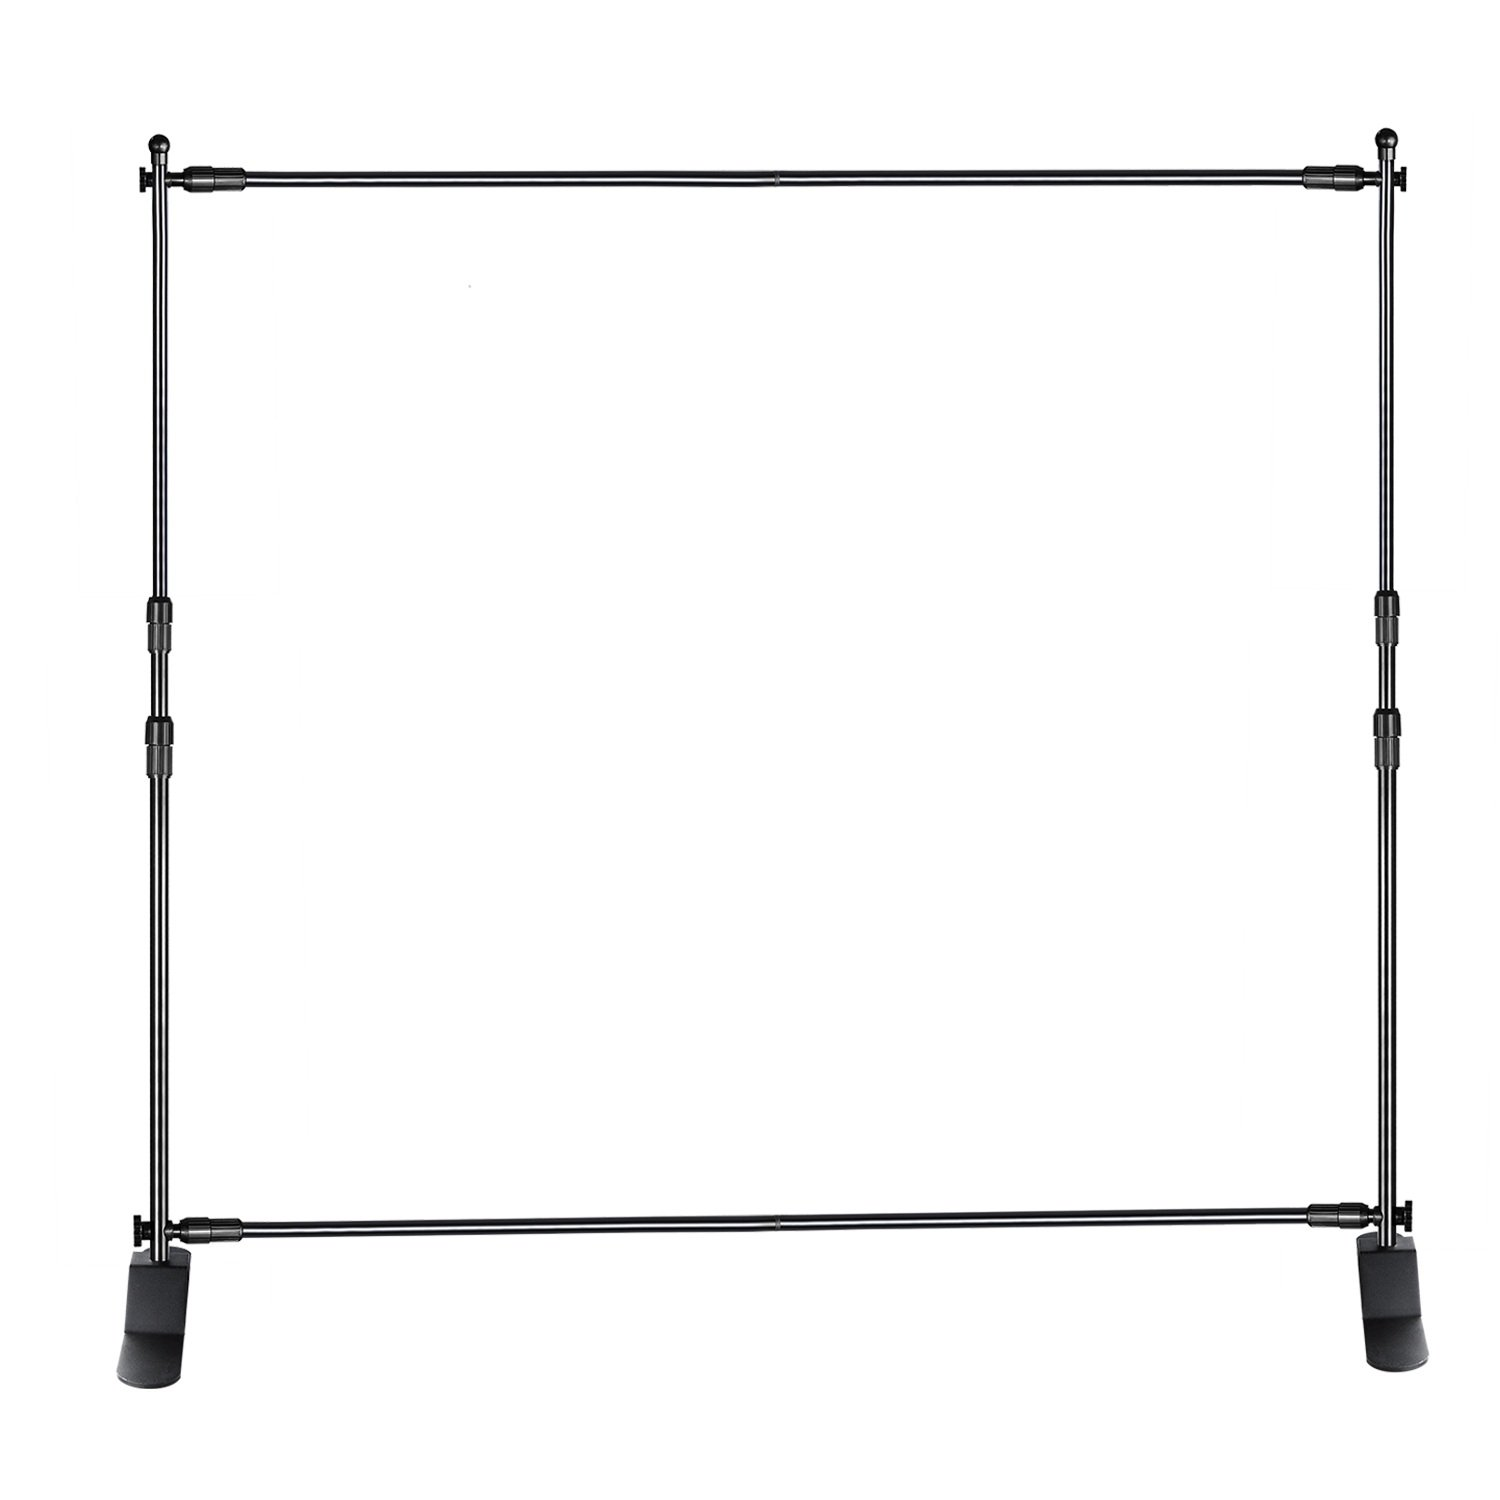 Neewer Telescopic Tube Background Support Pole and Stand with Heavy Duty Base for Photography Backdrop and Trade Show Display, 10 x 8 feet Adjustable Frame (W x H), Aluminum Alloy